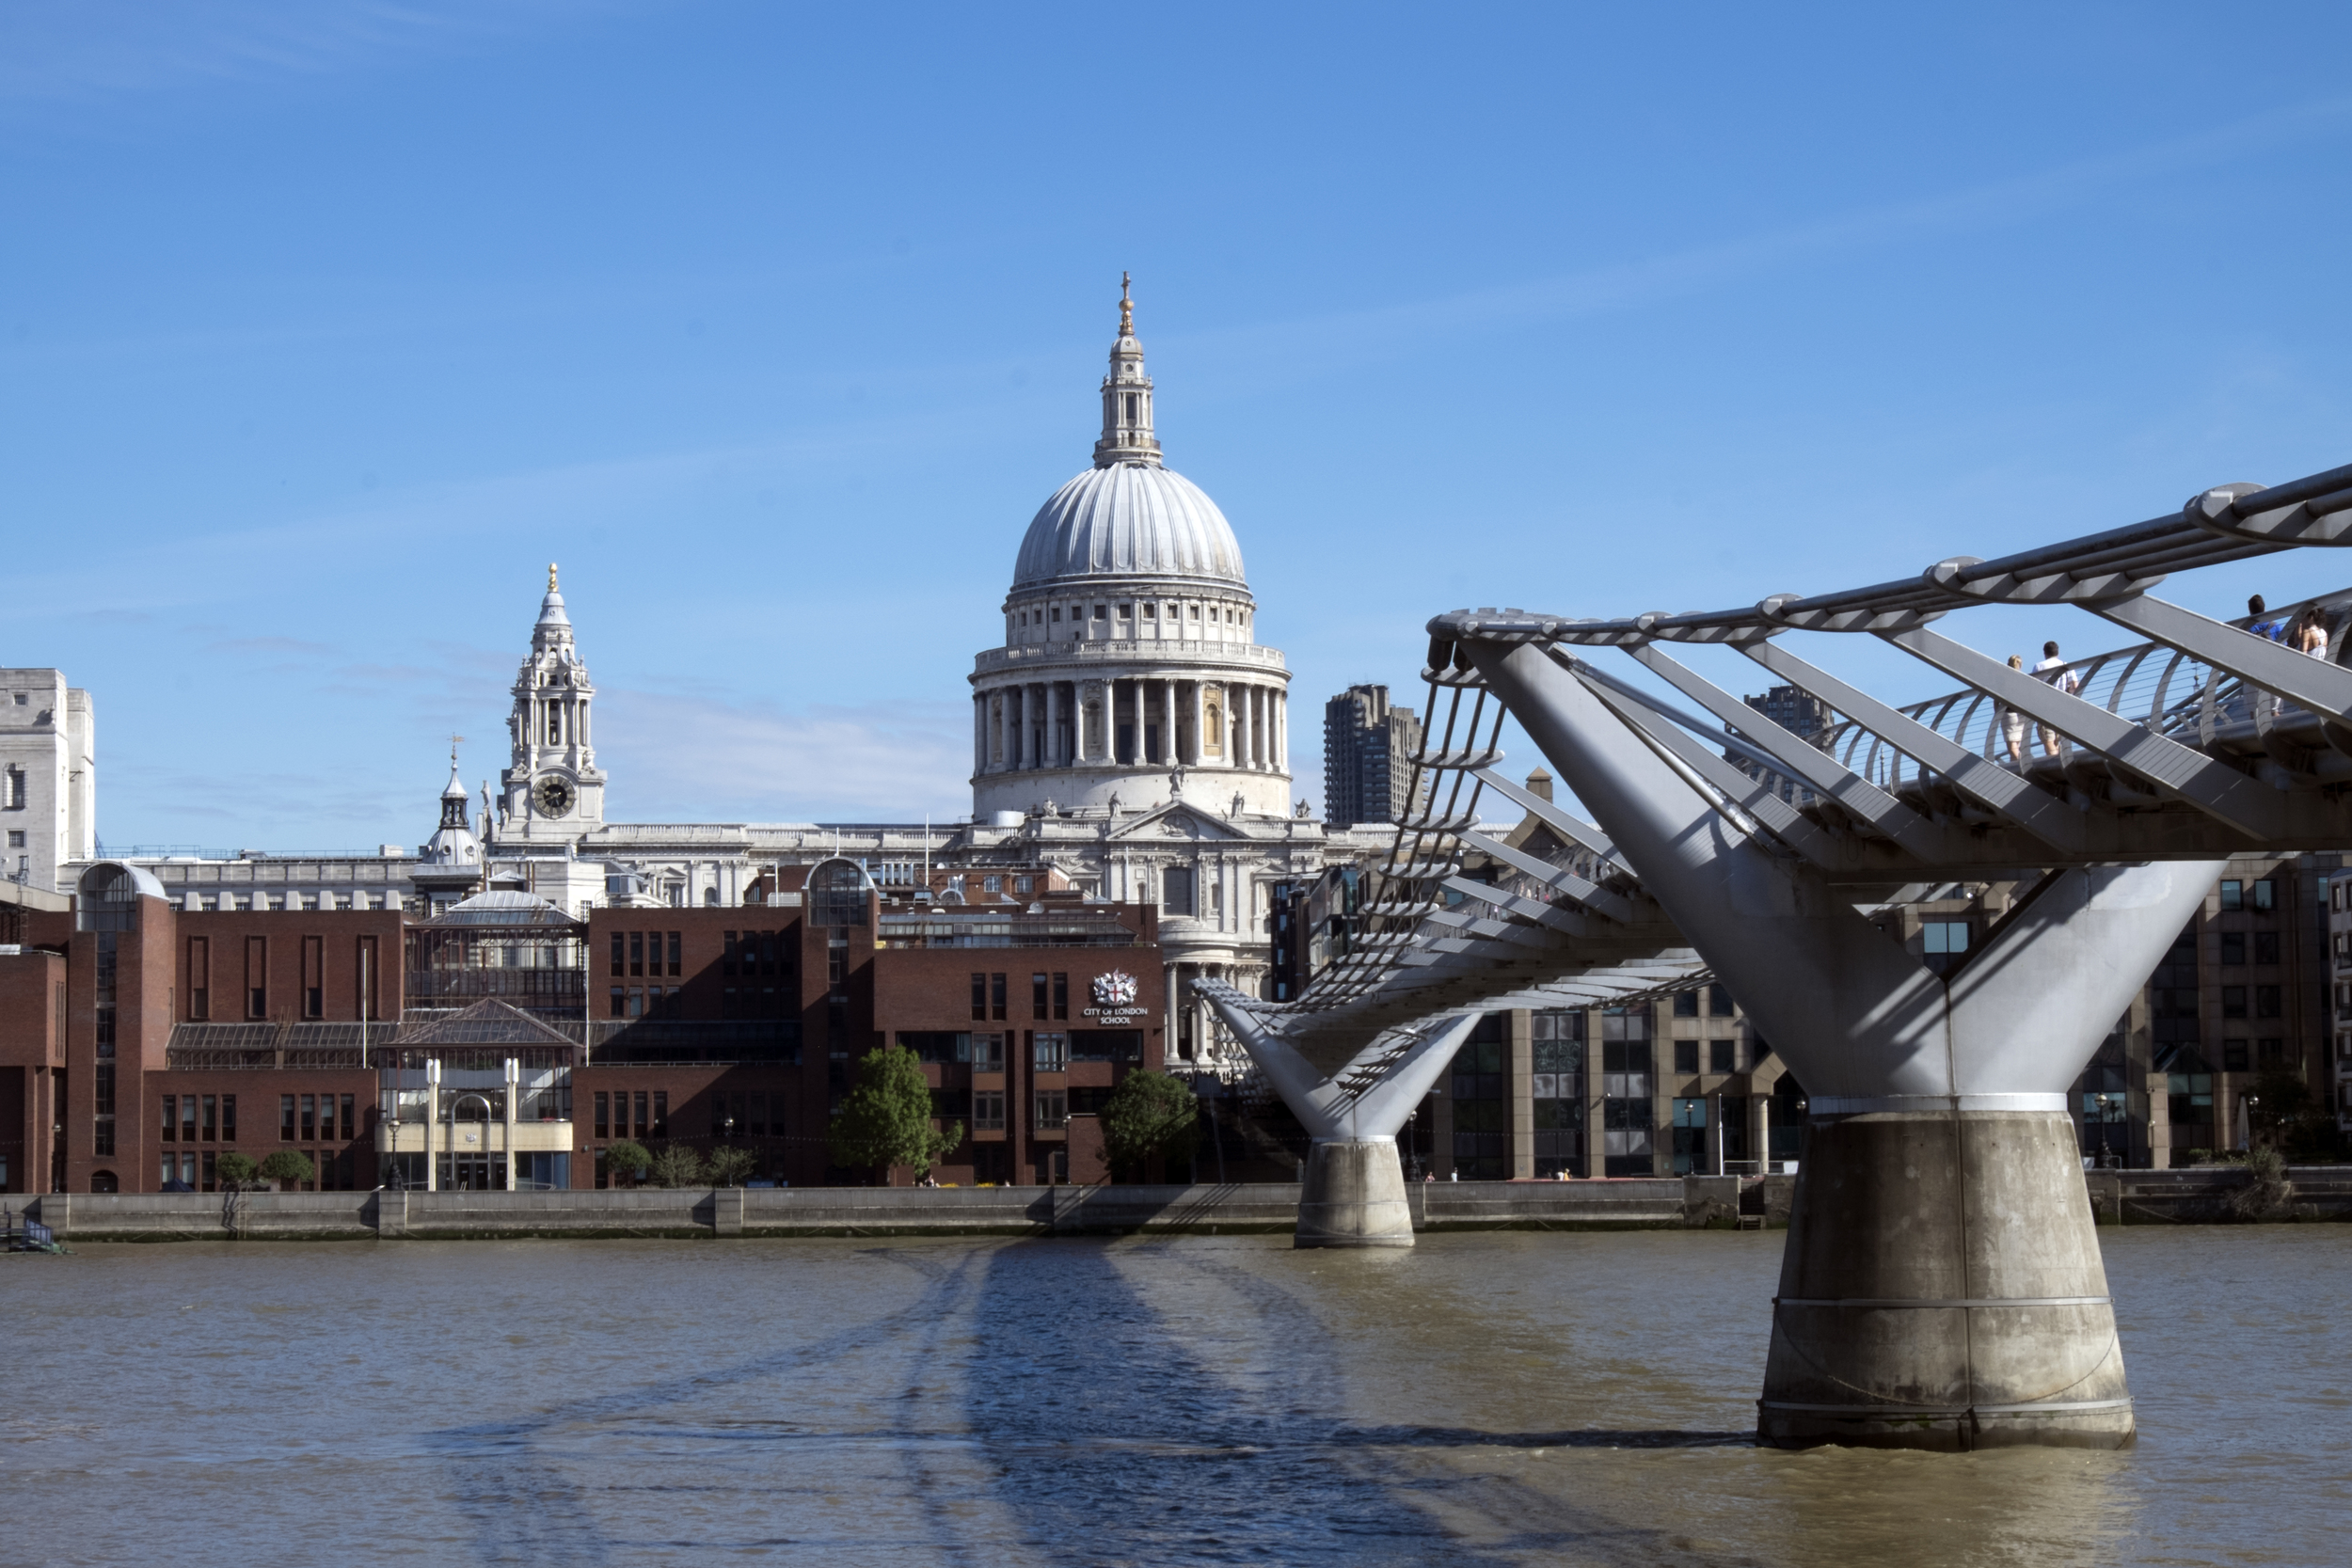 St. Paul's from Tate Modern. Our first neighborhood in London.